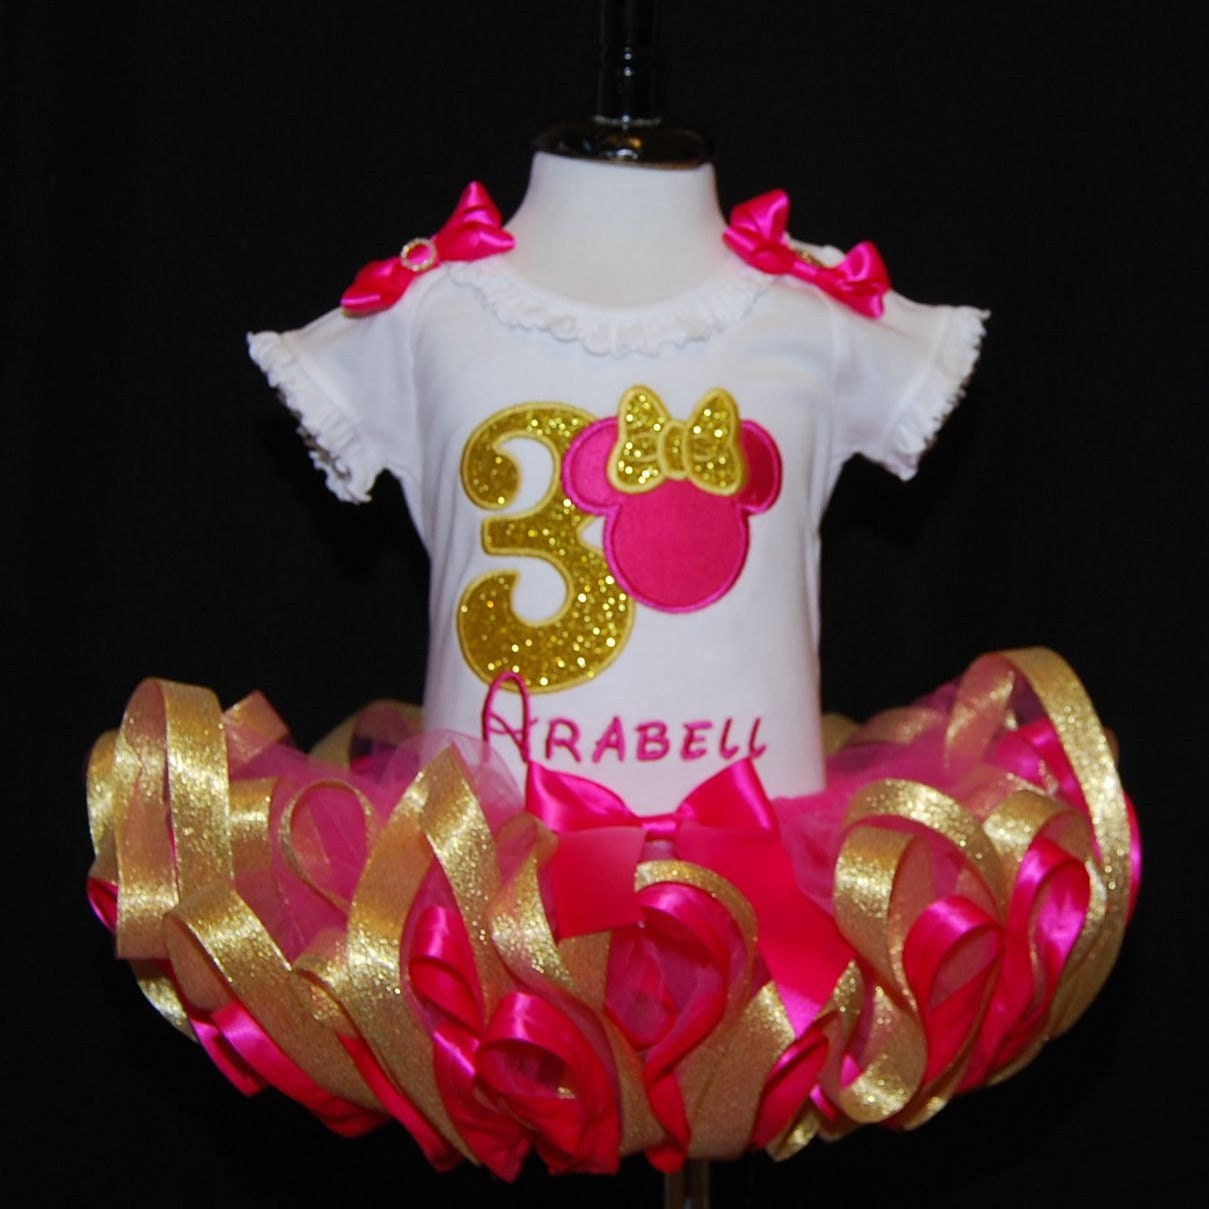 Birthday Tutu  Shocking Pink and Gold Minnie Mouse Third Birthday Tutu Outfi  2 pieces